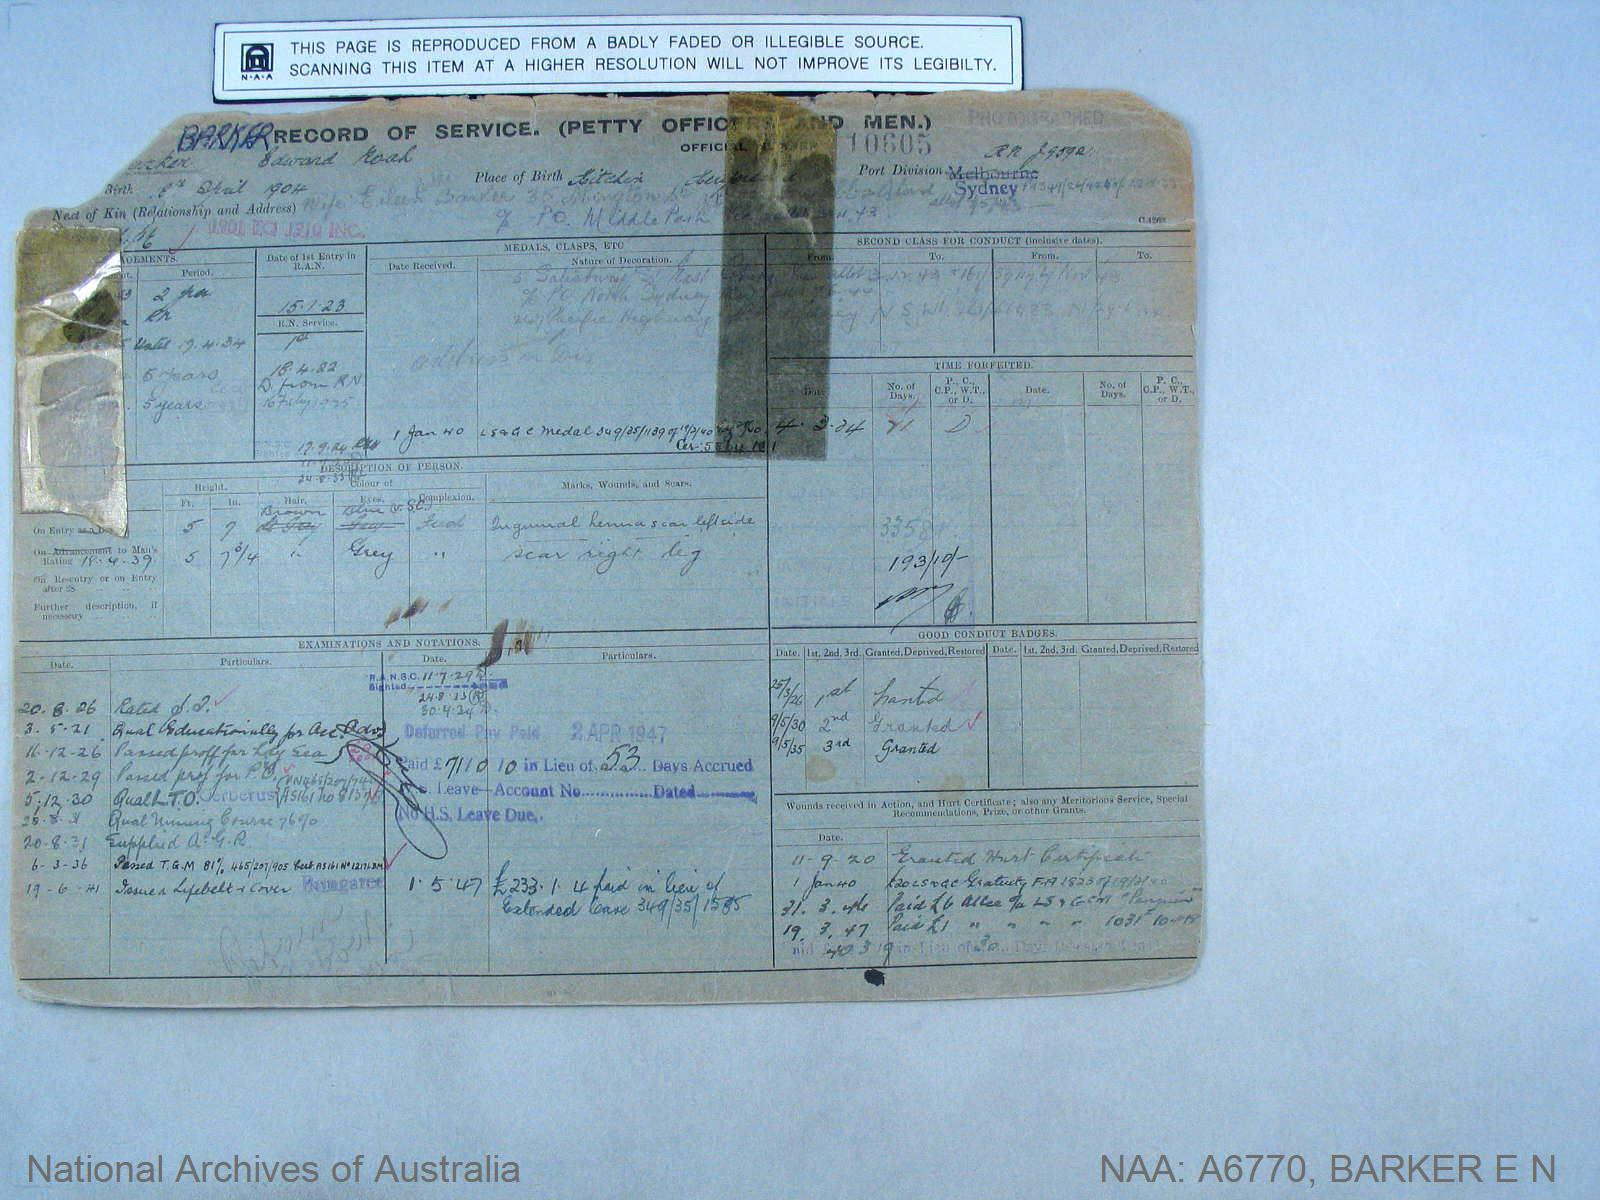 BARKER EDWARD NOAH : Service Number - 10605 : Date of birth - 18 Apr 1904 : Place of birth - KITCHIN UNKNOWN : Place of enlistment - SYDNEY : Next of Kin - BARKER EILEEN